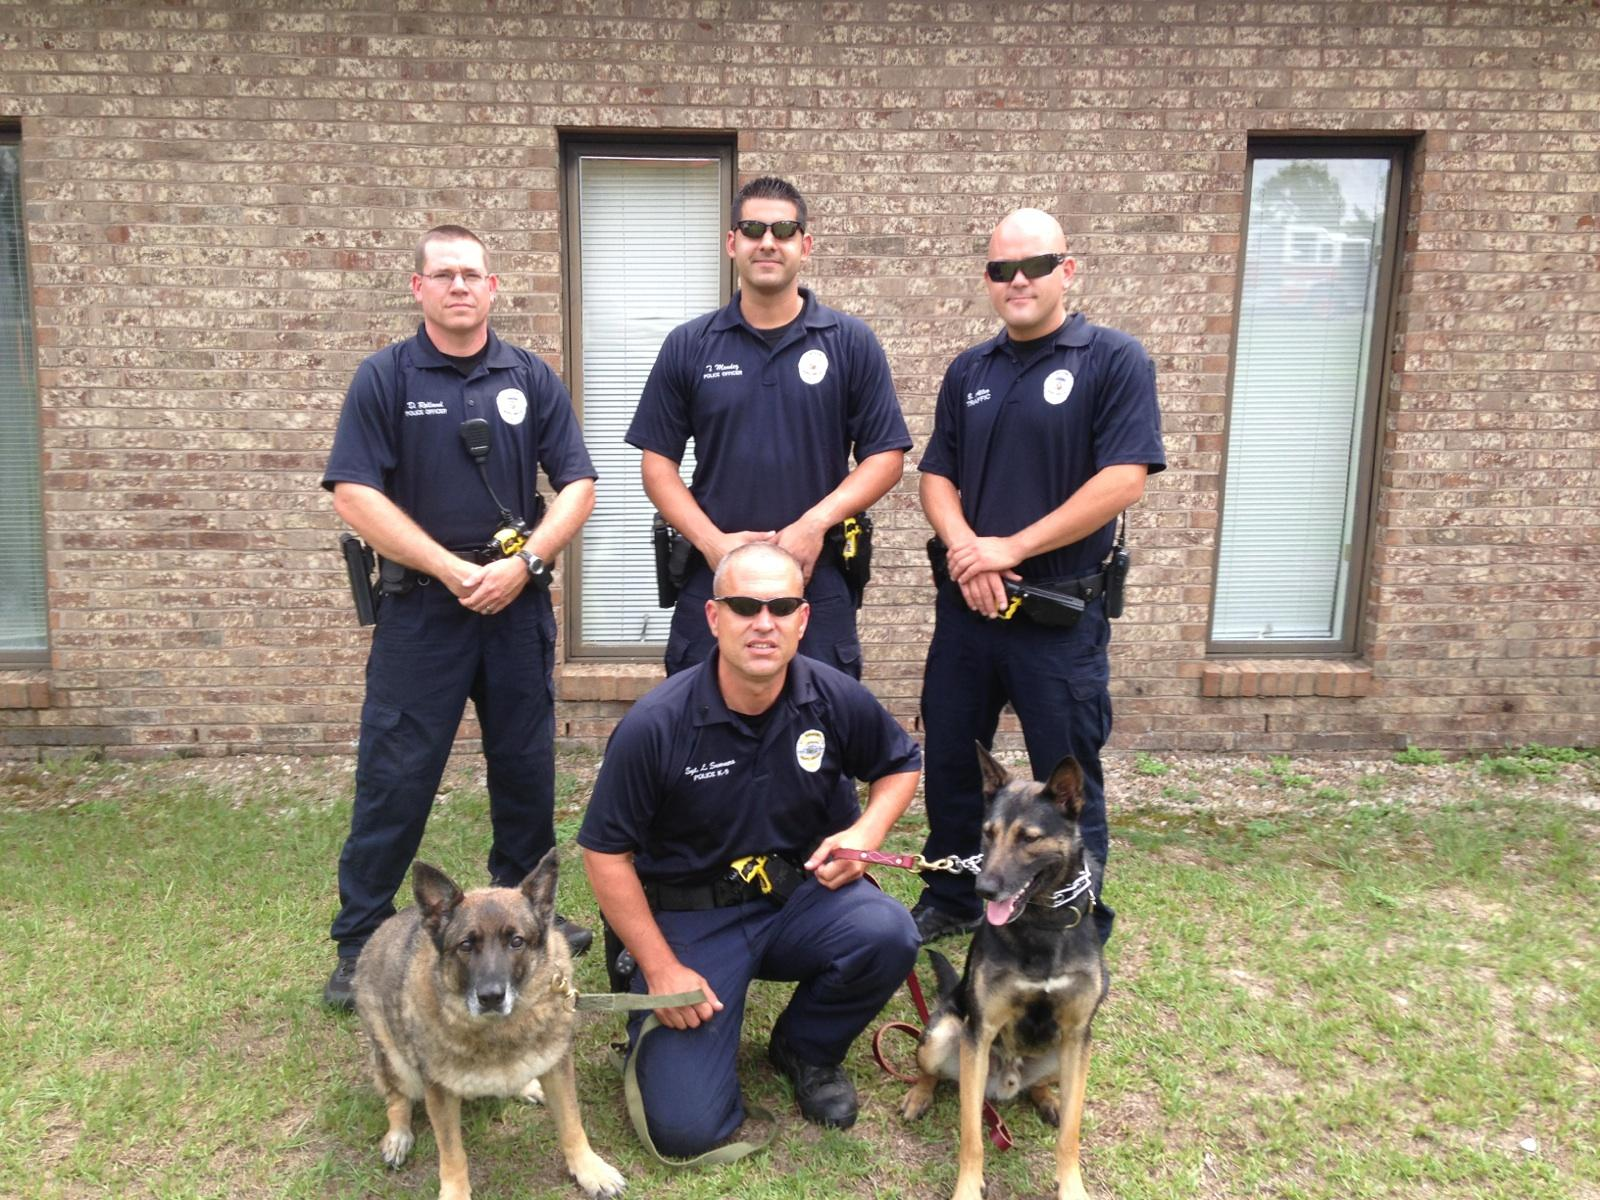 4 Police Officers with 2 K9 Officers